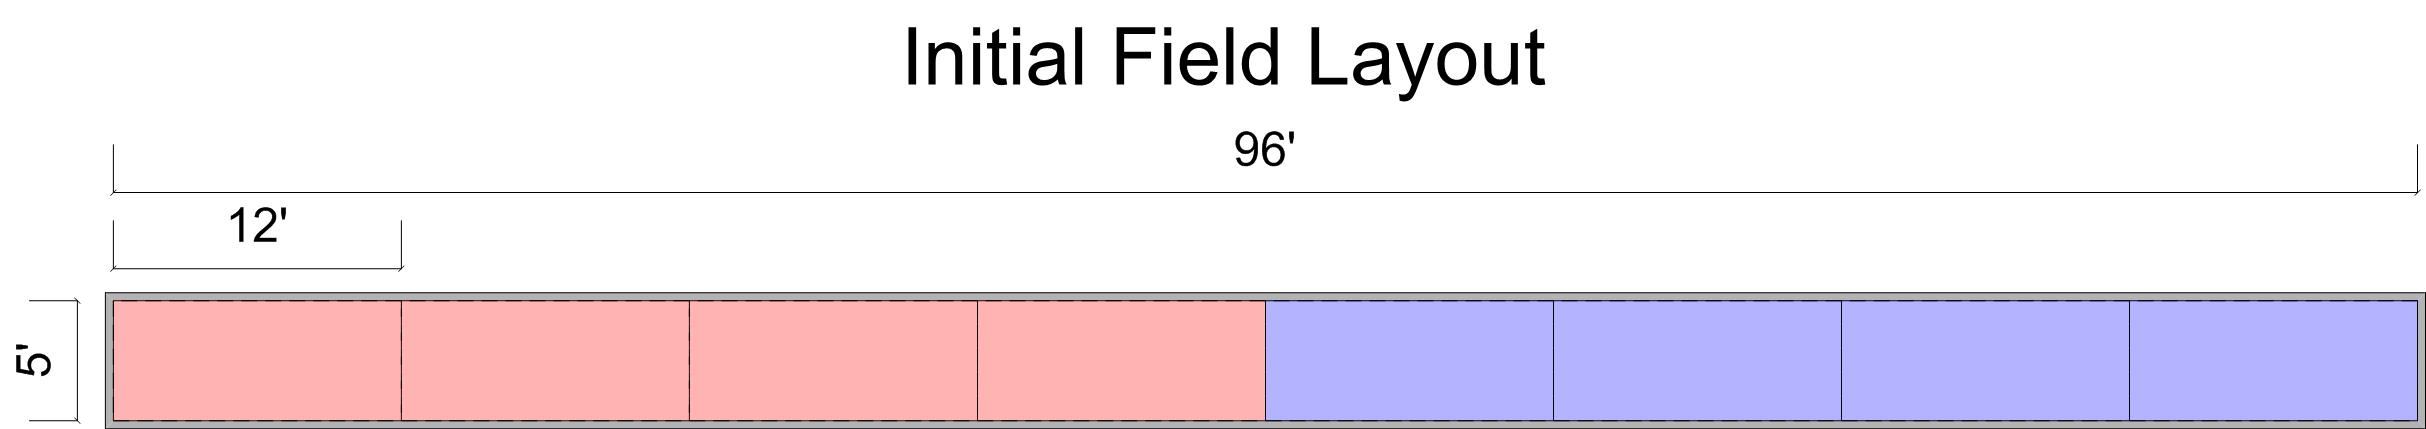 initial field layout